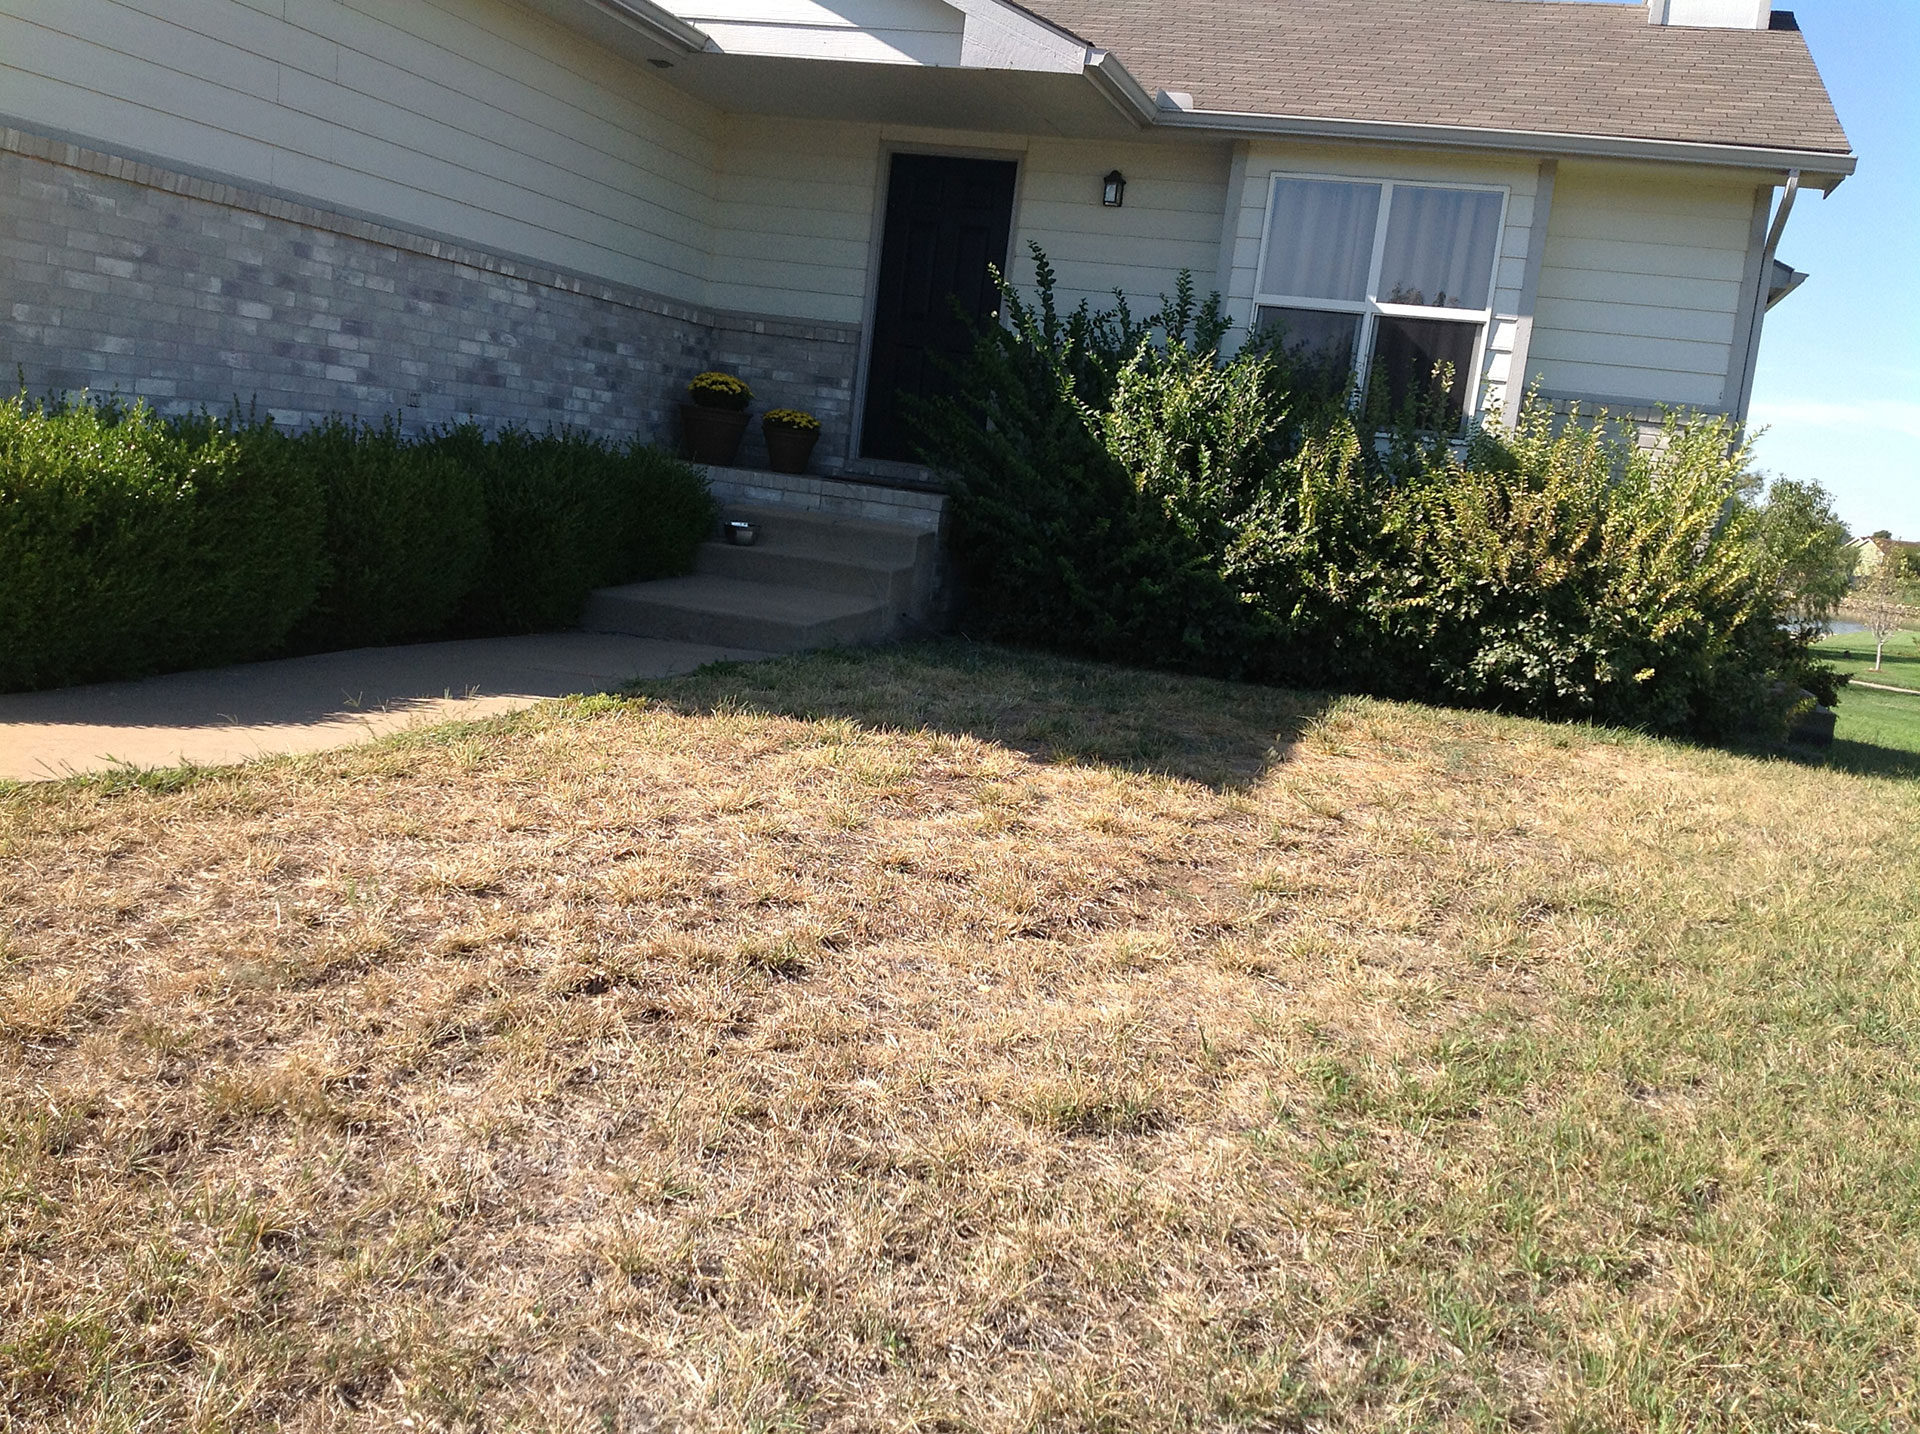 Landscaping and lawn care before and after daniels for Lawn and garden care services